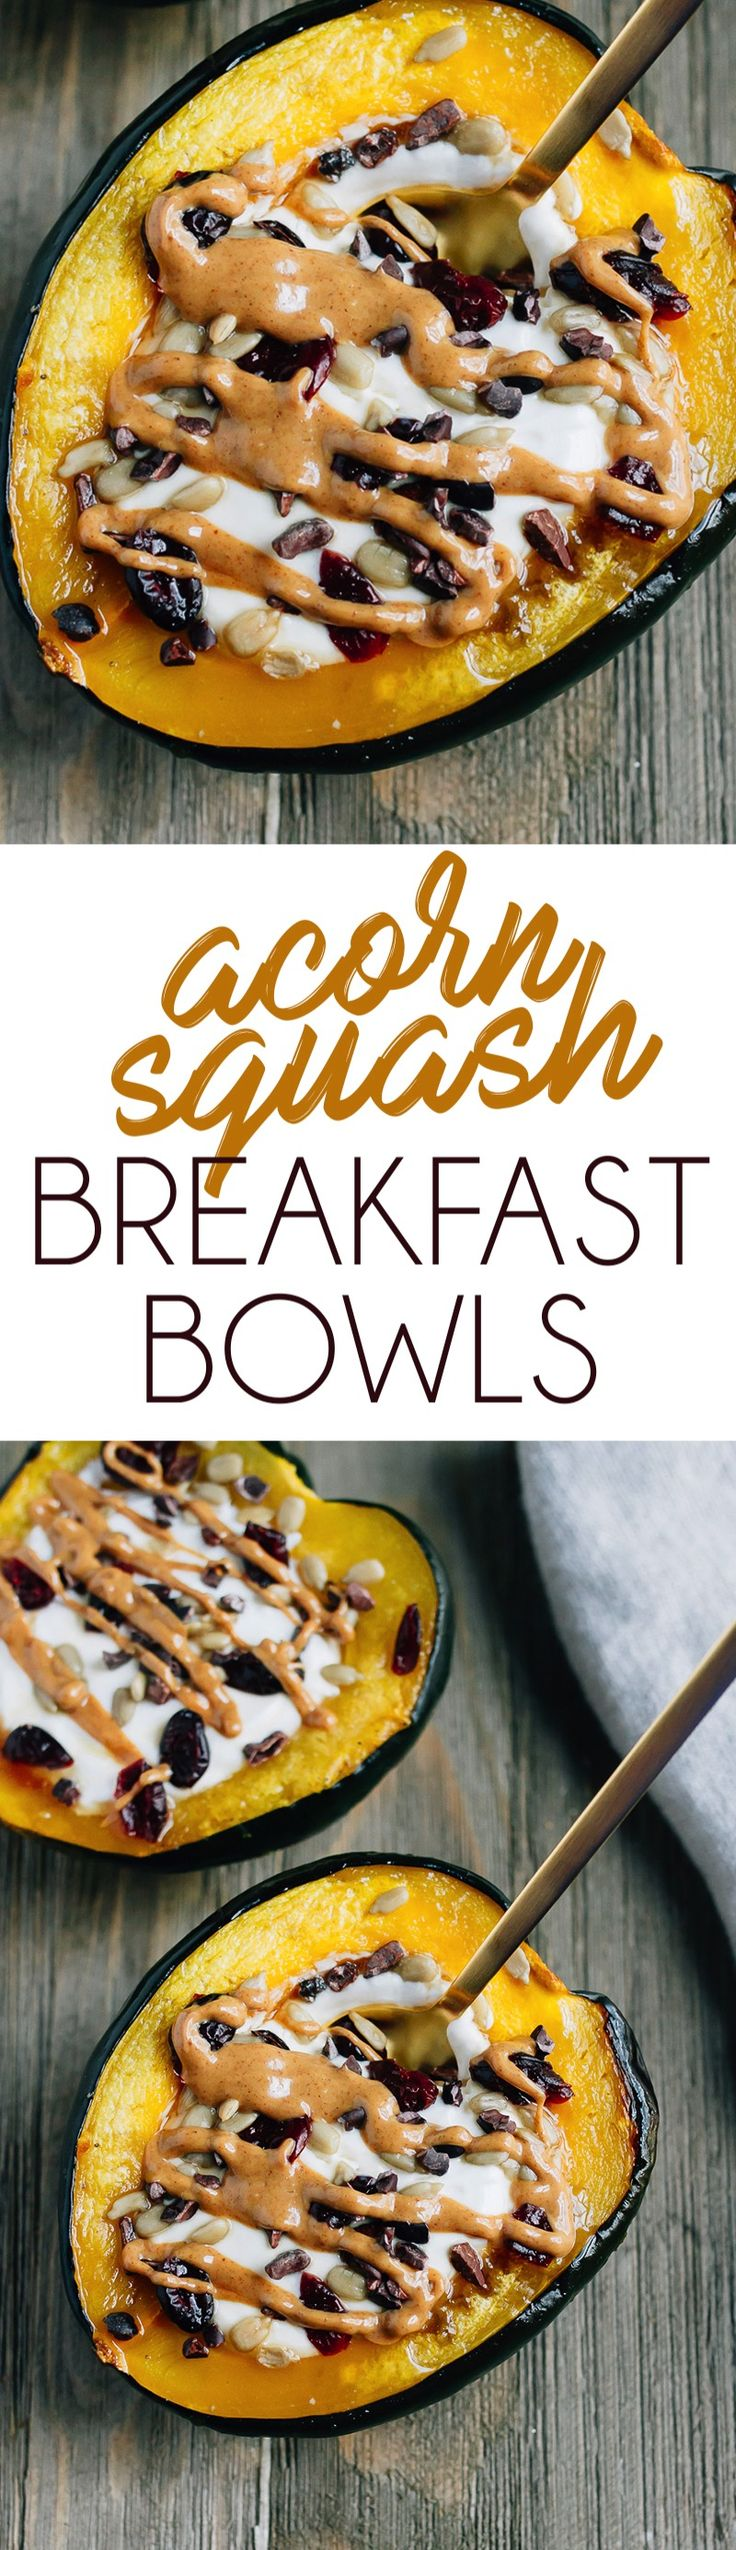 Roasted acorn squash breakfast bowls served warm with yogurt and your favorite toppings!